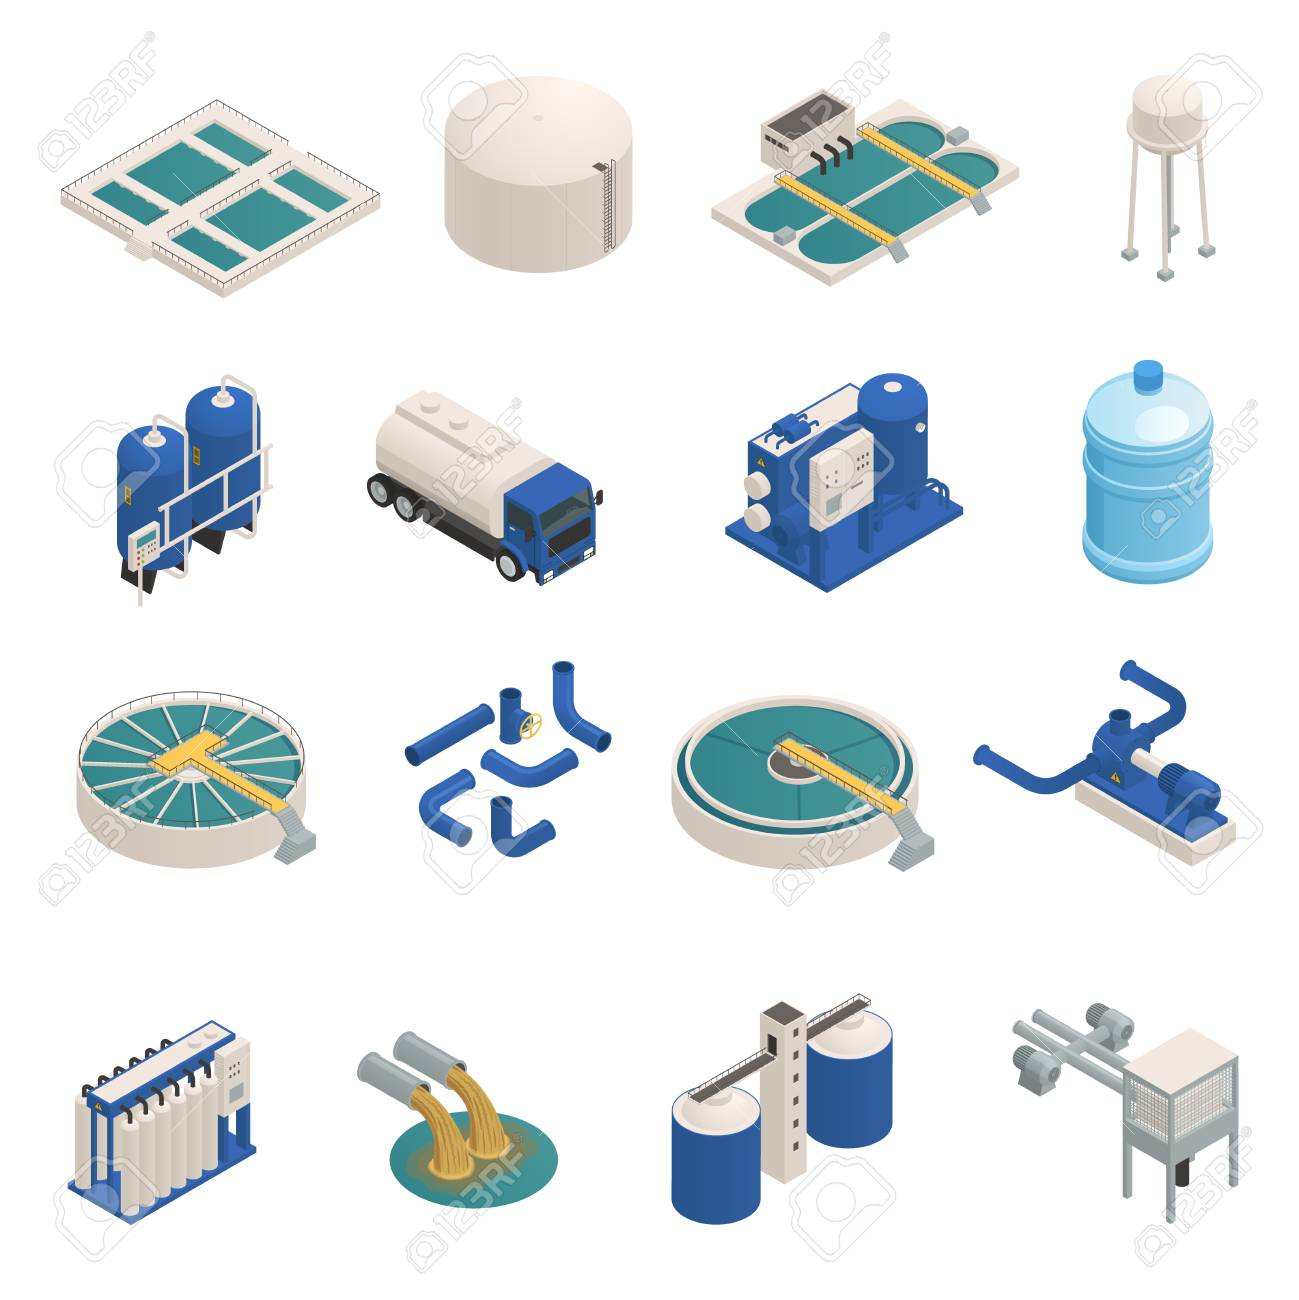 Water purification technology elements isometric icons collection with wastewater cleaning filtration and pumping units isolated vector illustration - 95259659